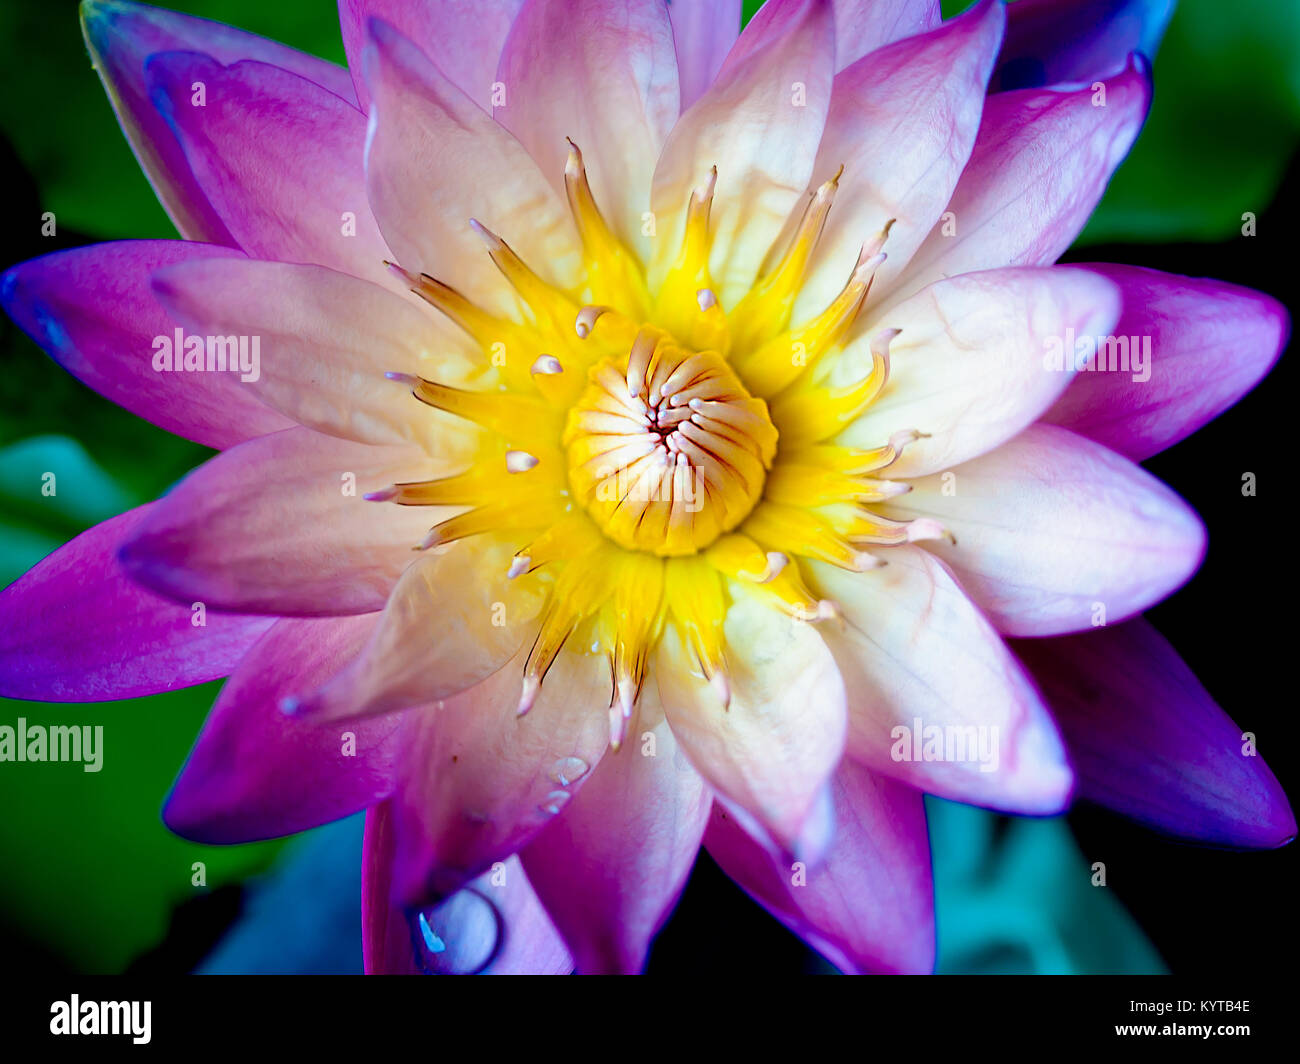 Lotus Flower With Beautiful Colors Stock Photo 172024622 Alamy